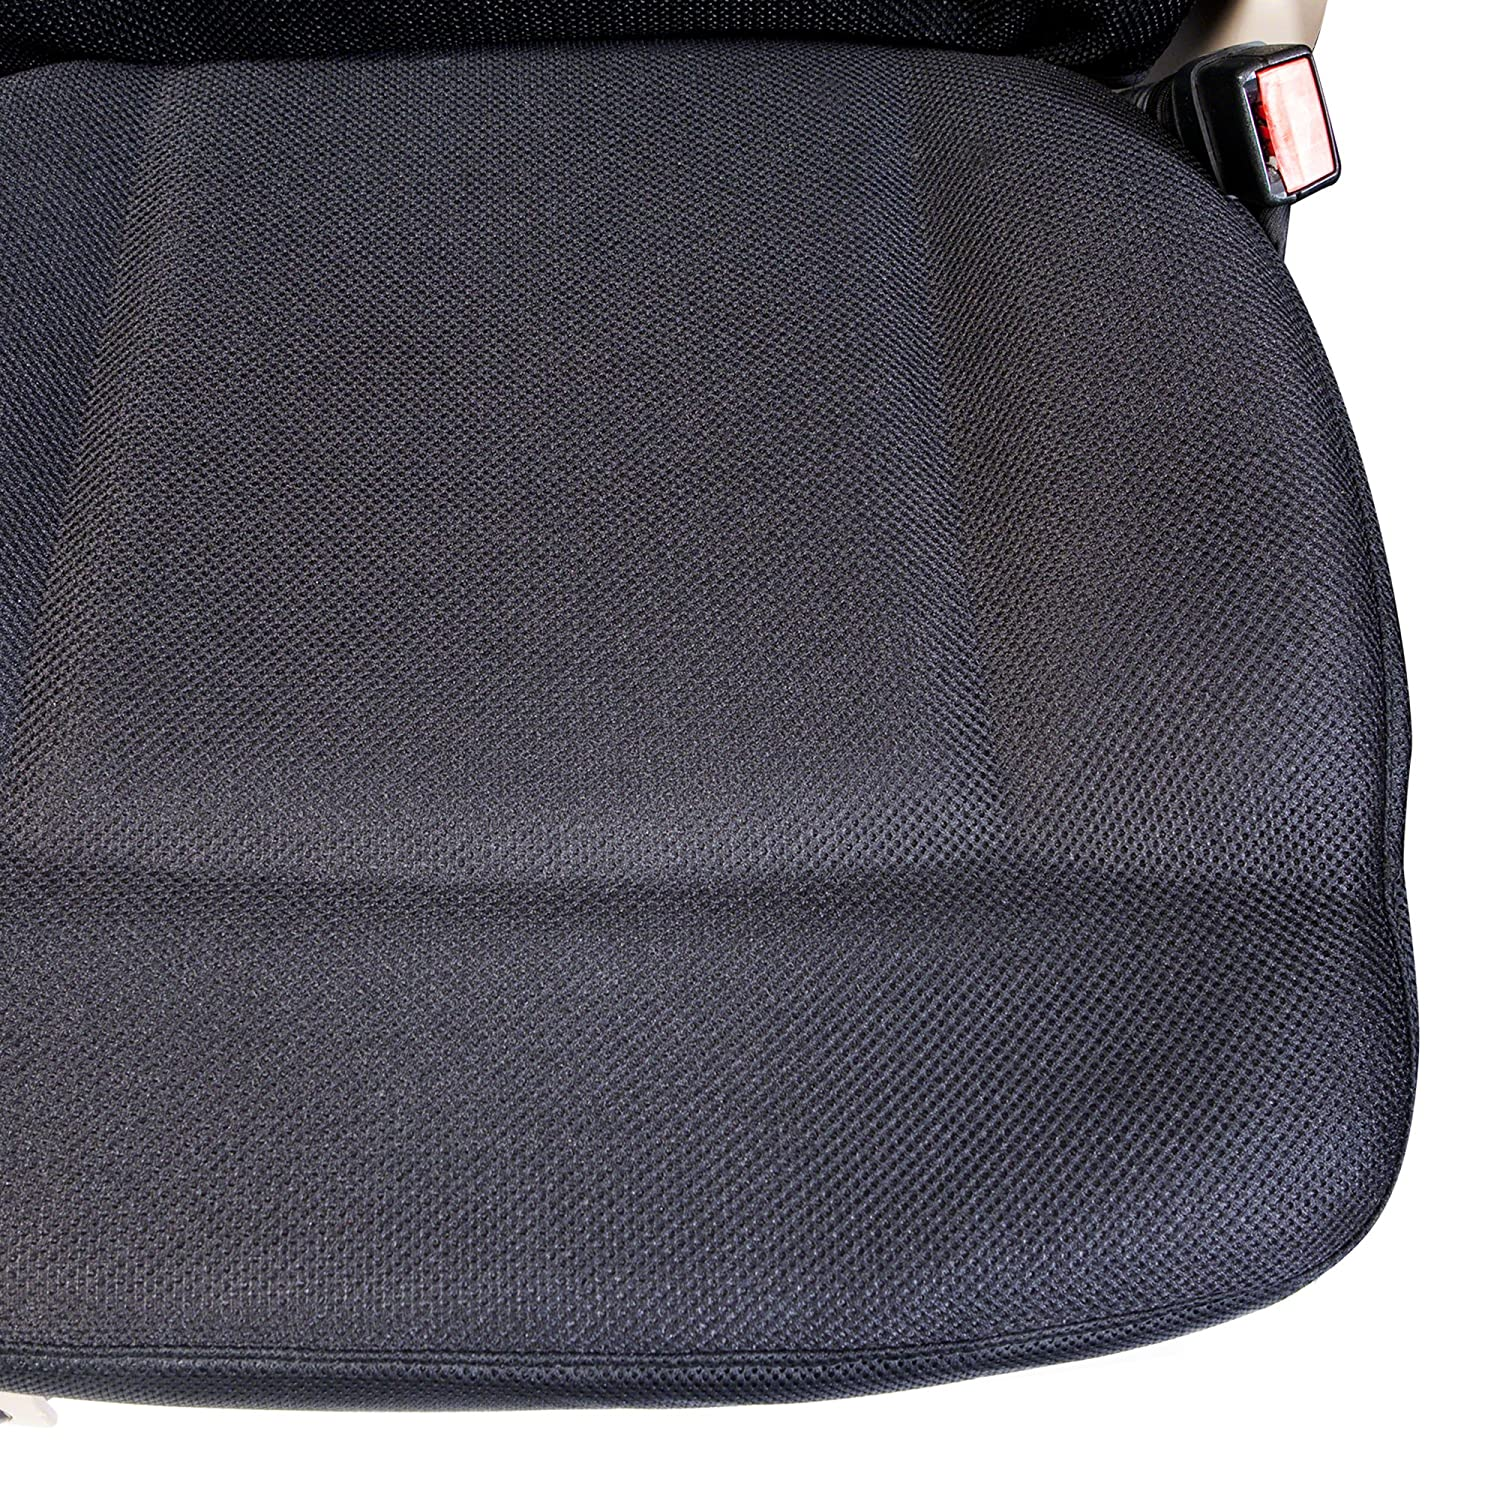 for Select Gmc Yukon Models 1 Row Coverking Custom Fit Molded Seat Cover Mesh Solid Taupe MSCSMM06GM9476M